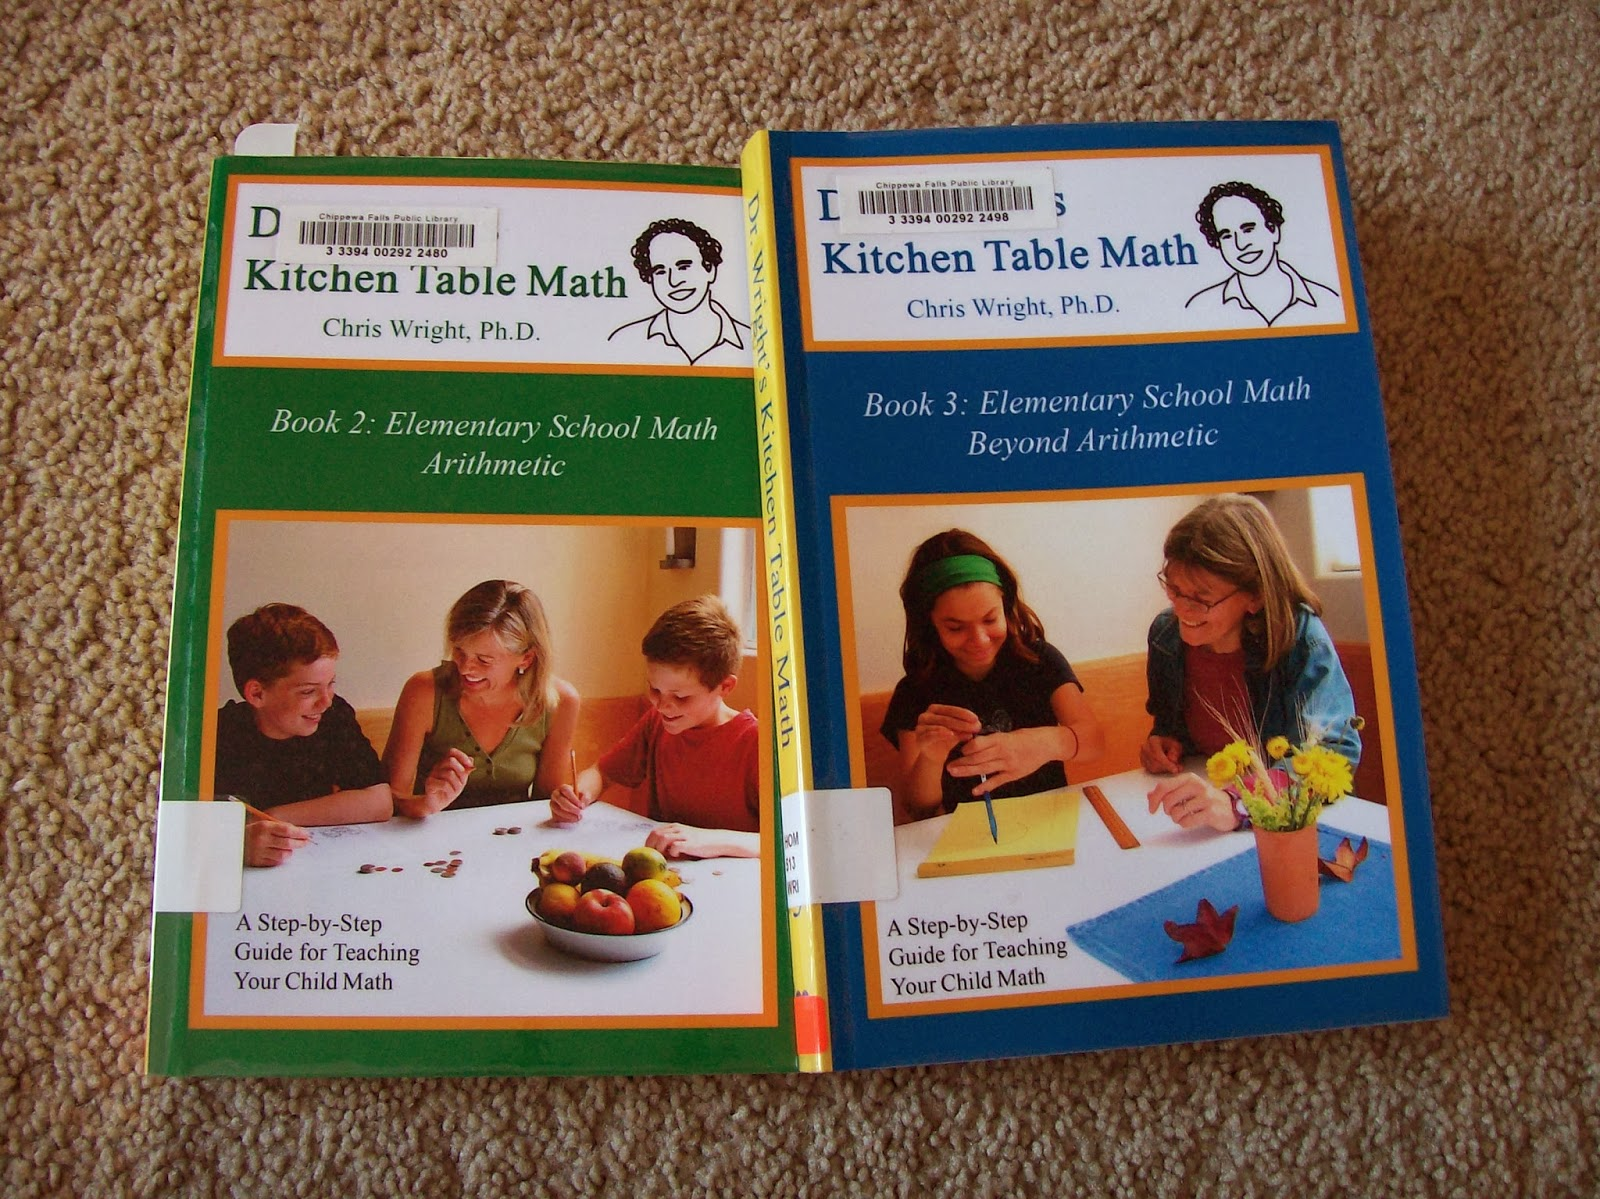 Reflections from drywood creek kitchen table math have you heard about dr wrights kitchen table math in my math research frenzy i came across this series of books i was fortunate in that our local workwithnaturefo